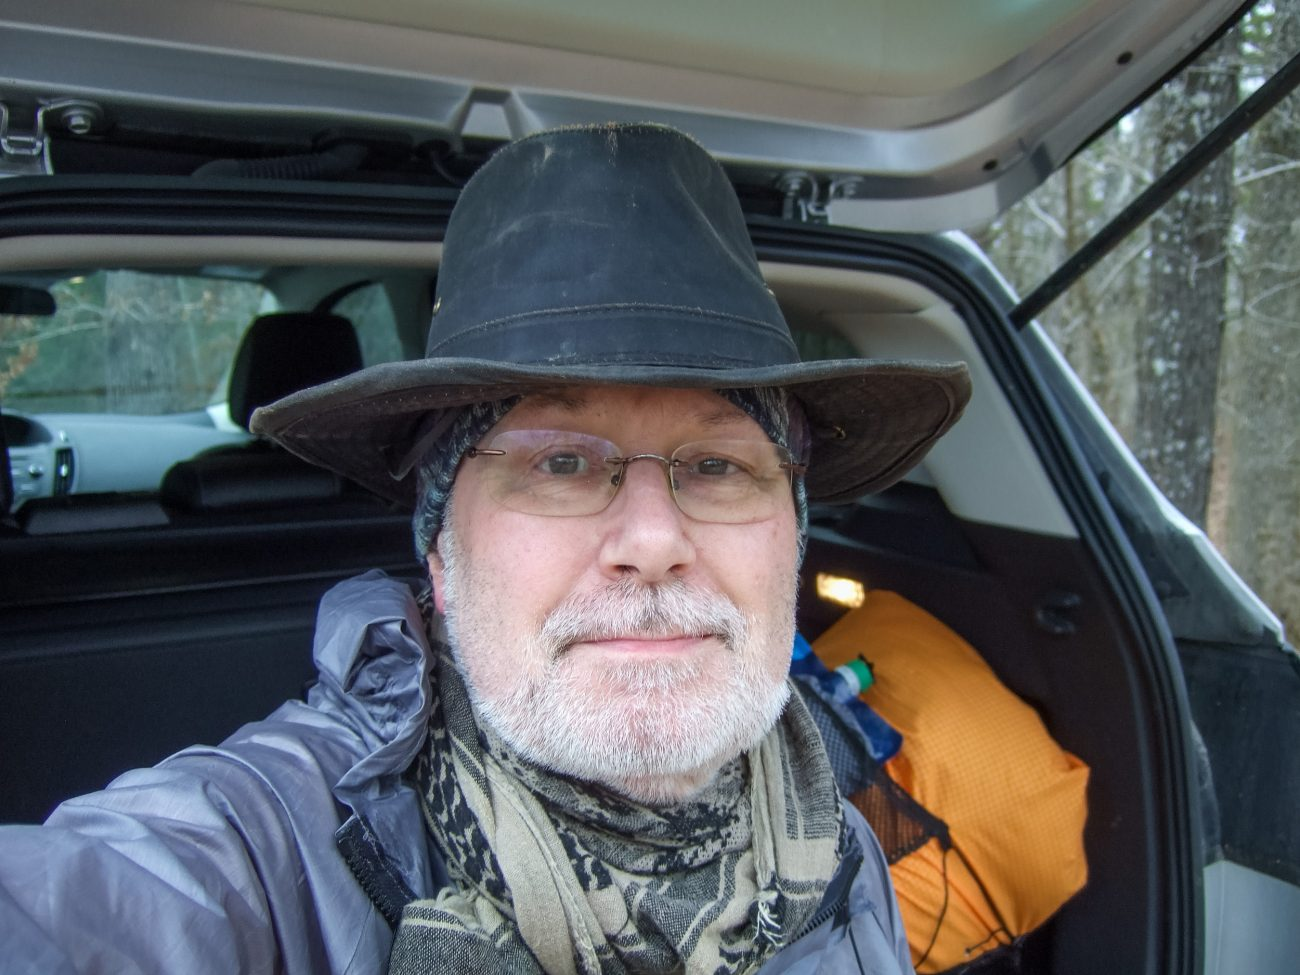 Color photograph of Gary Allman at the Tower Trailhead, Hercules Glades Wilderness, December 2020.